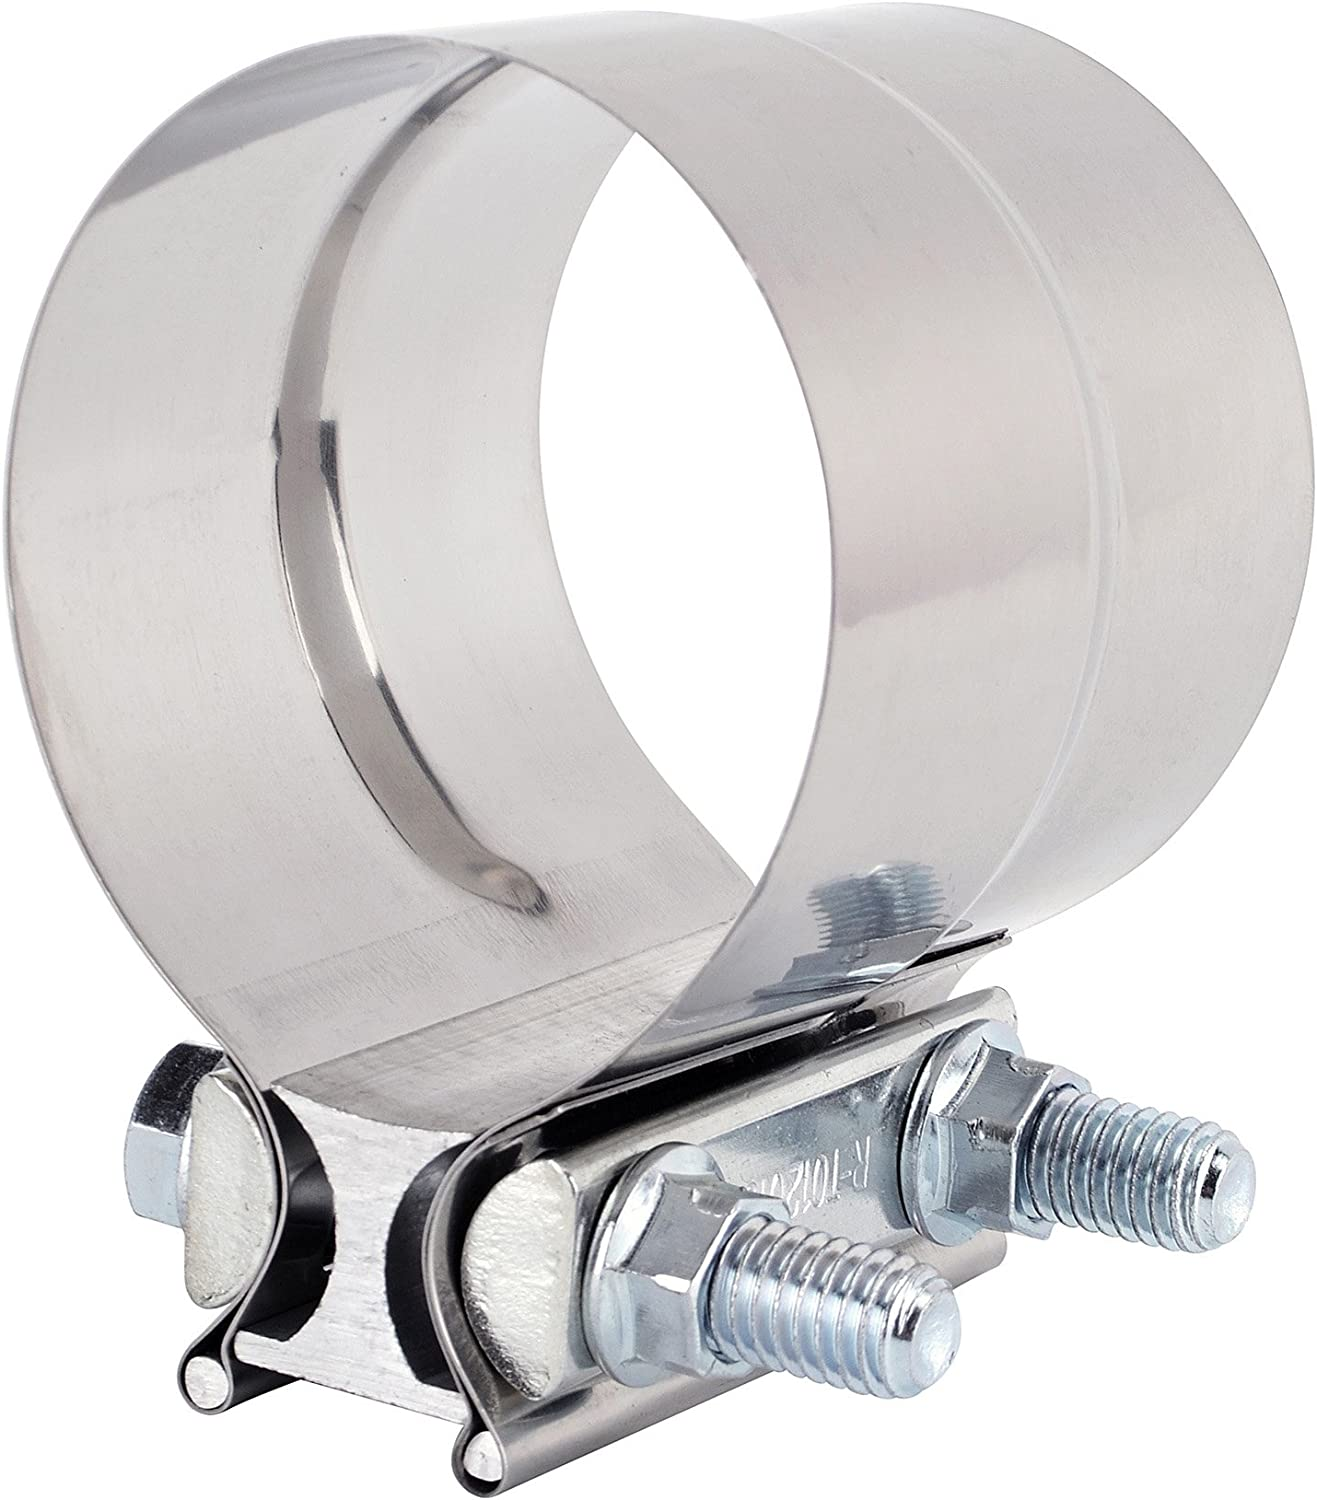 EVIL ENERGY 2.25inch 2 1//4 Lap Joint Exhaust Band Clamp Exhaust Repair Preformed 304 Stainless Steel 2pcs